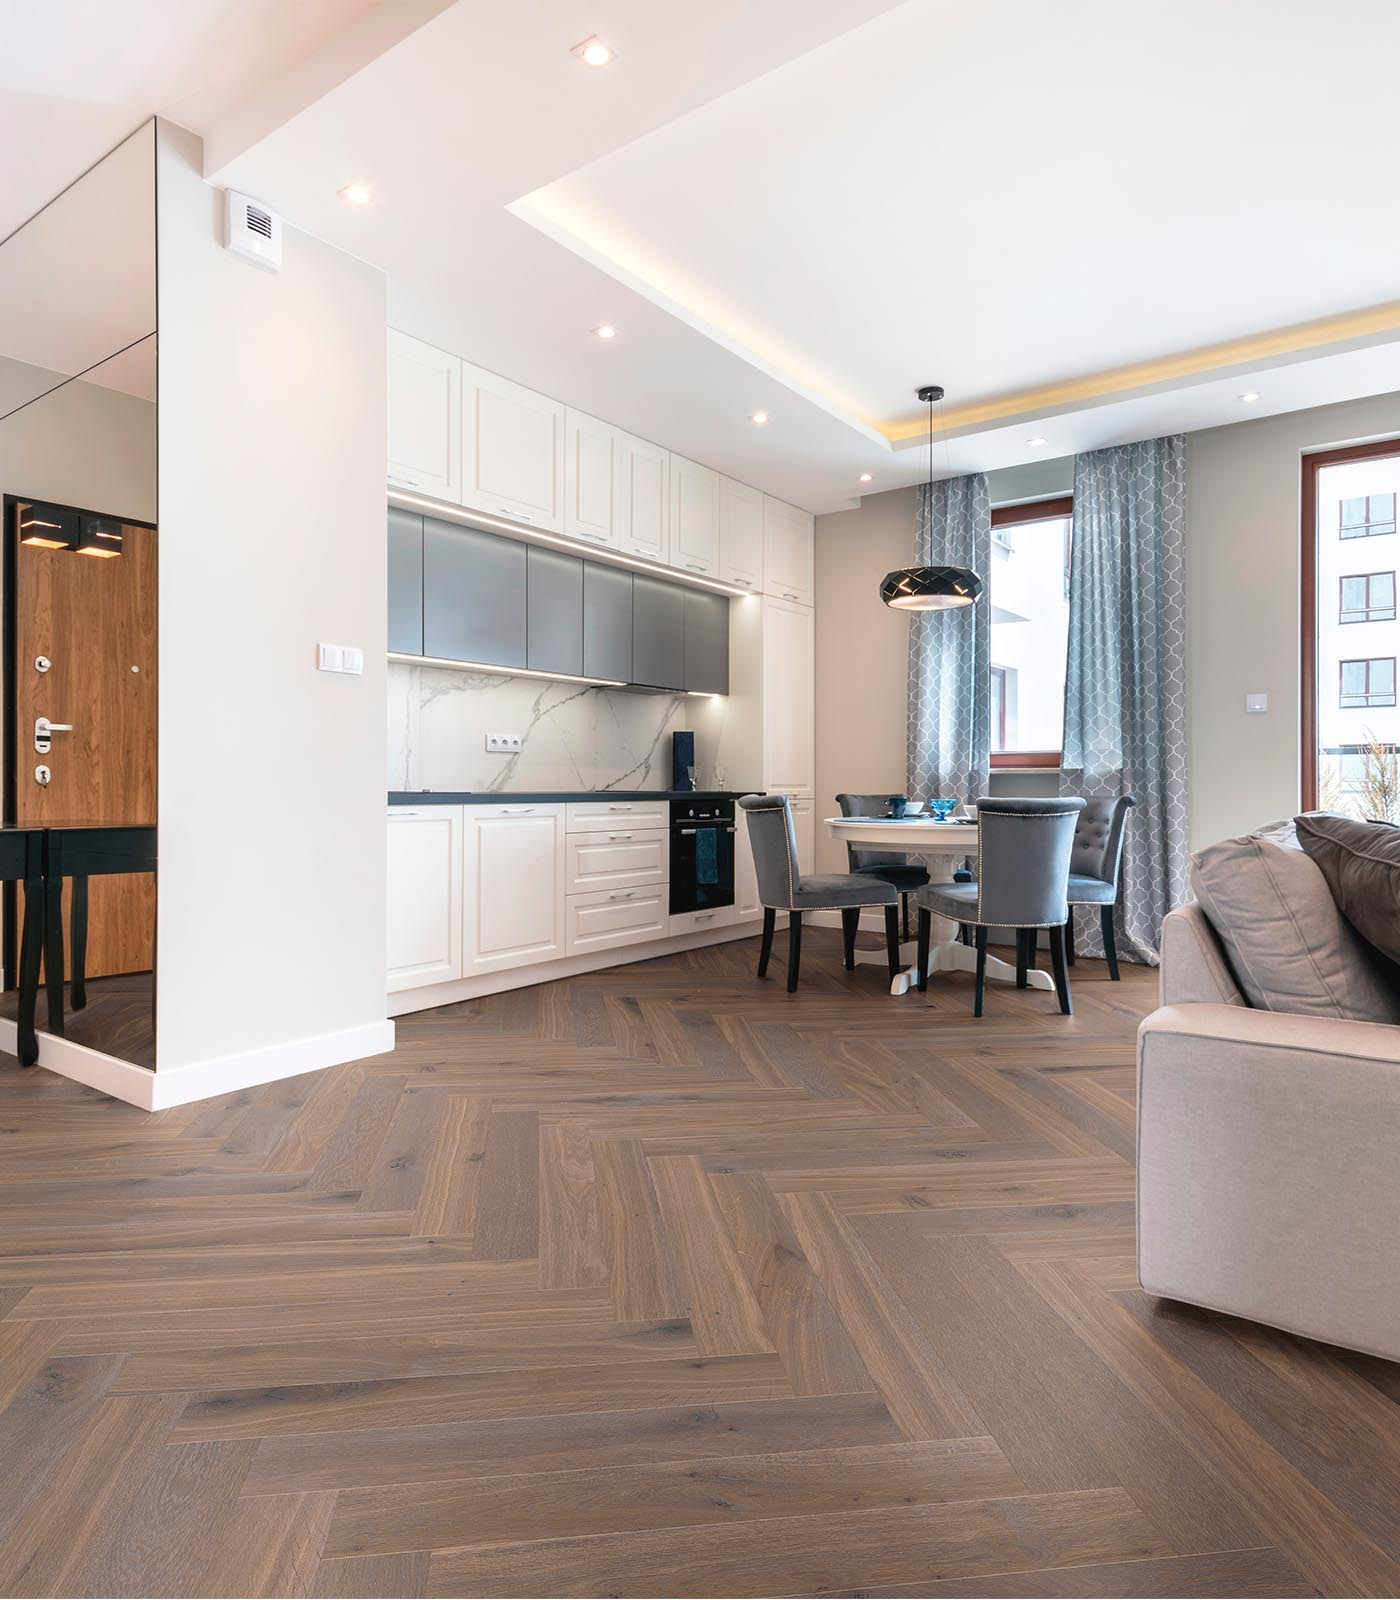 Fashion Collection-Herringbone-Biarritz-Western European oak floors-room